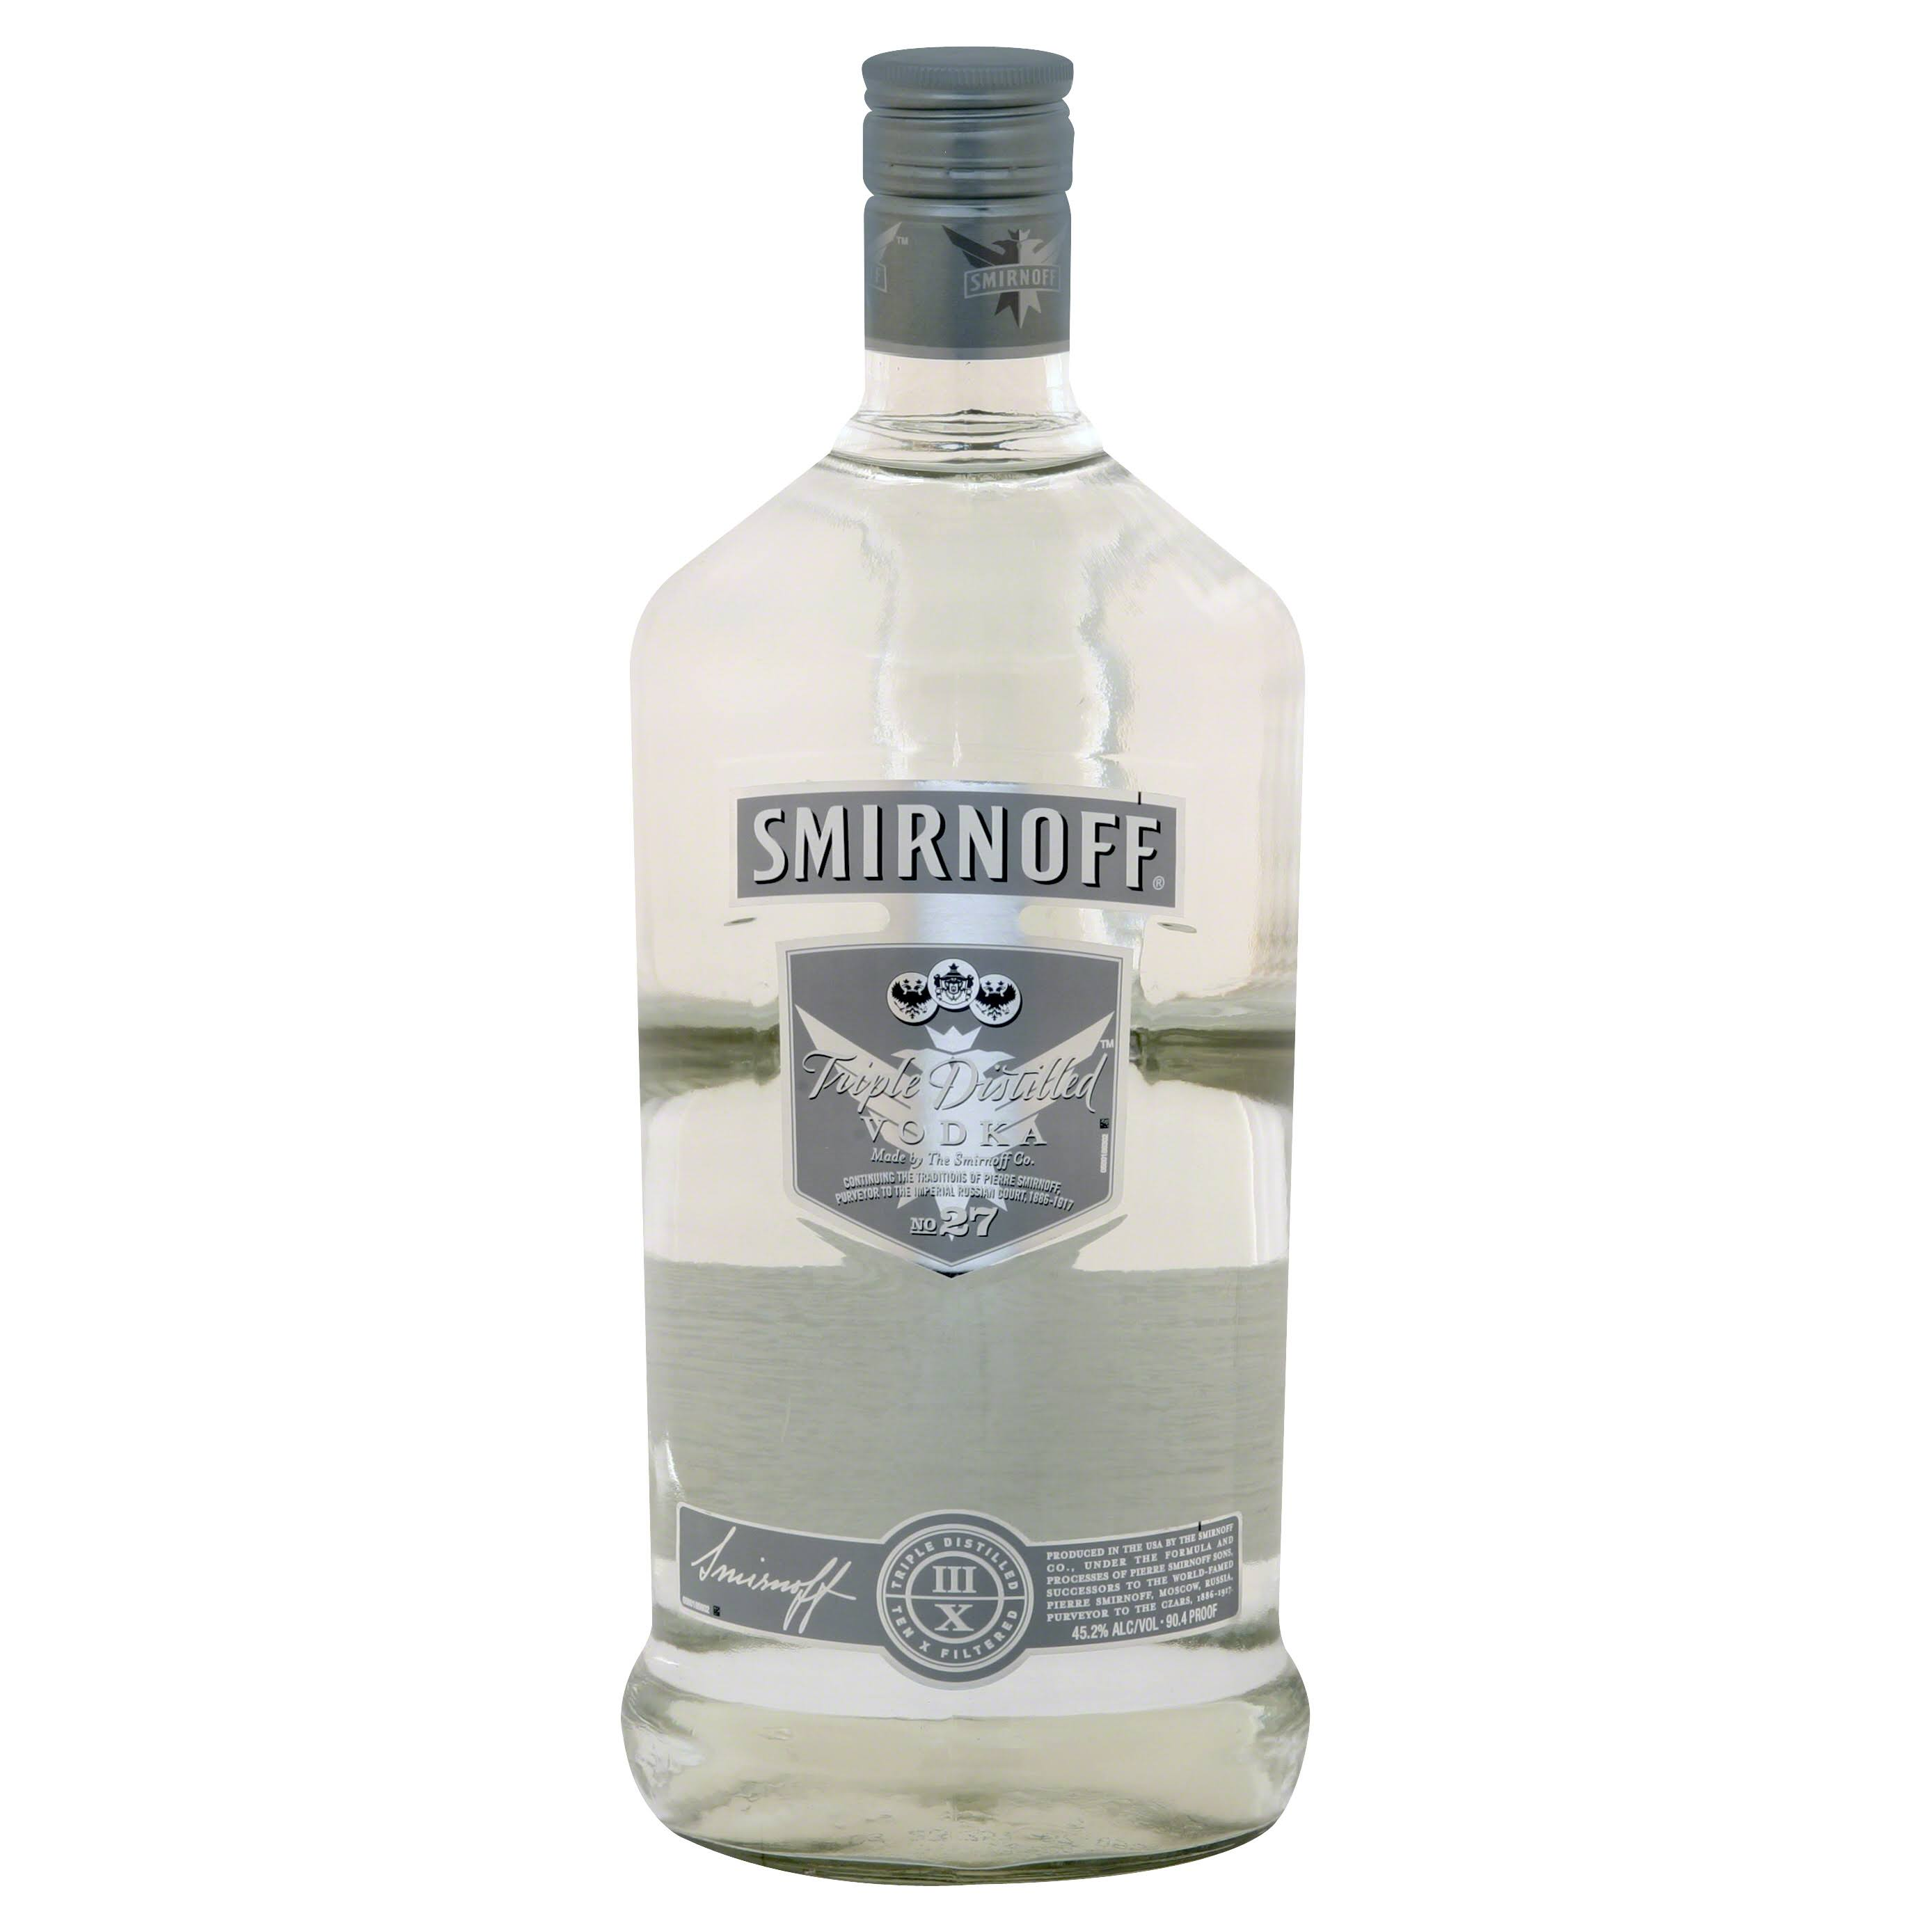 Smirnoff Triple Distilled Vodka - 1.75L